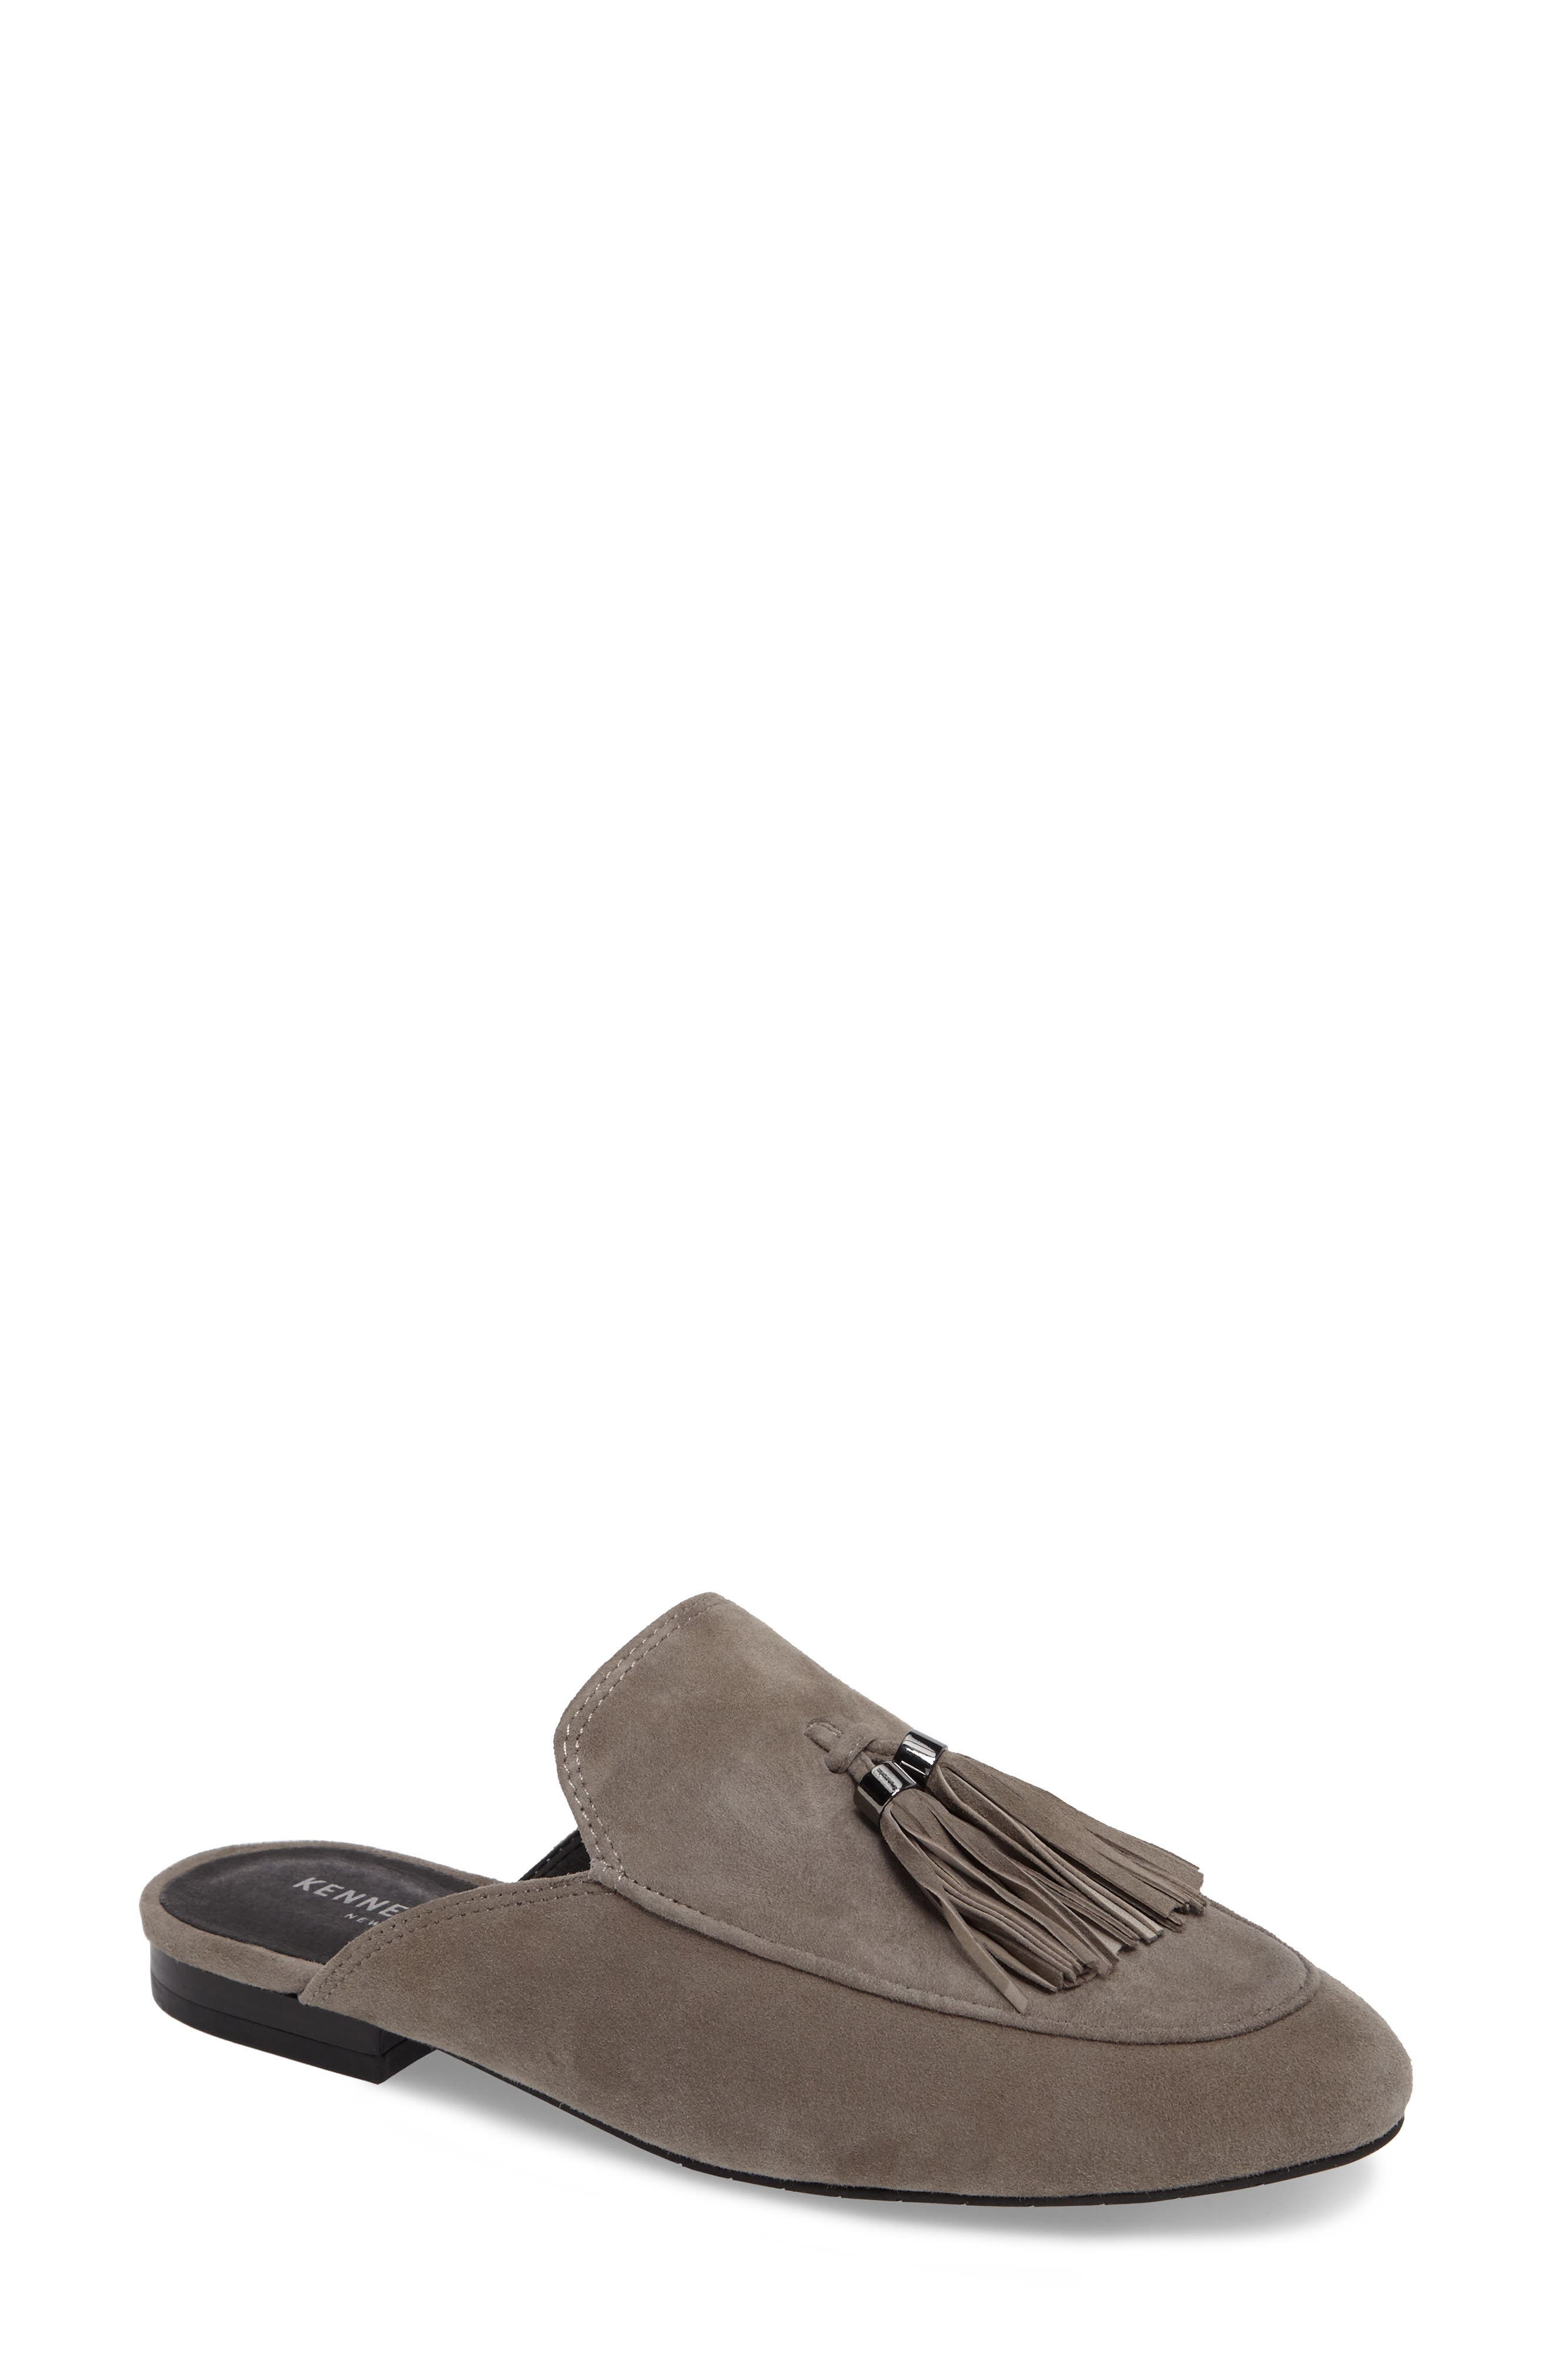 Alternate Image 1 Selected - Kenneth Cole New York Whinnie Loafer Mule (Women)